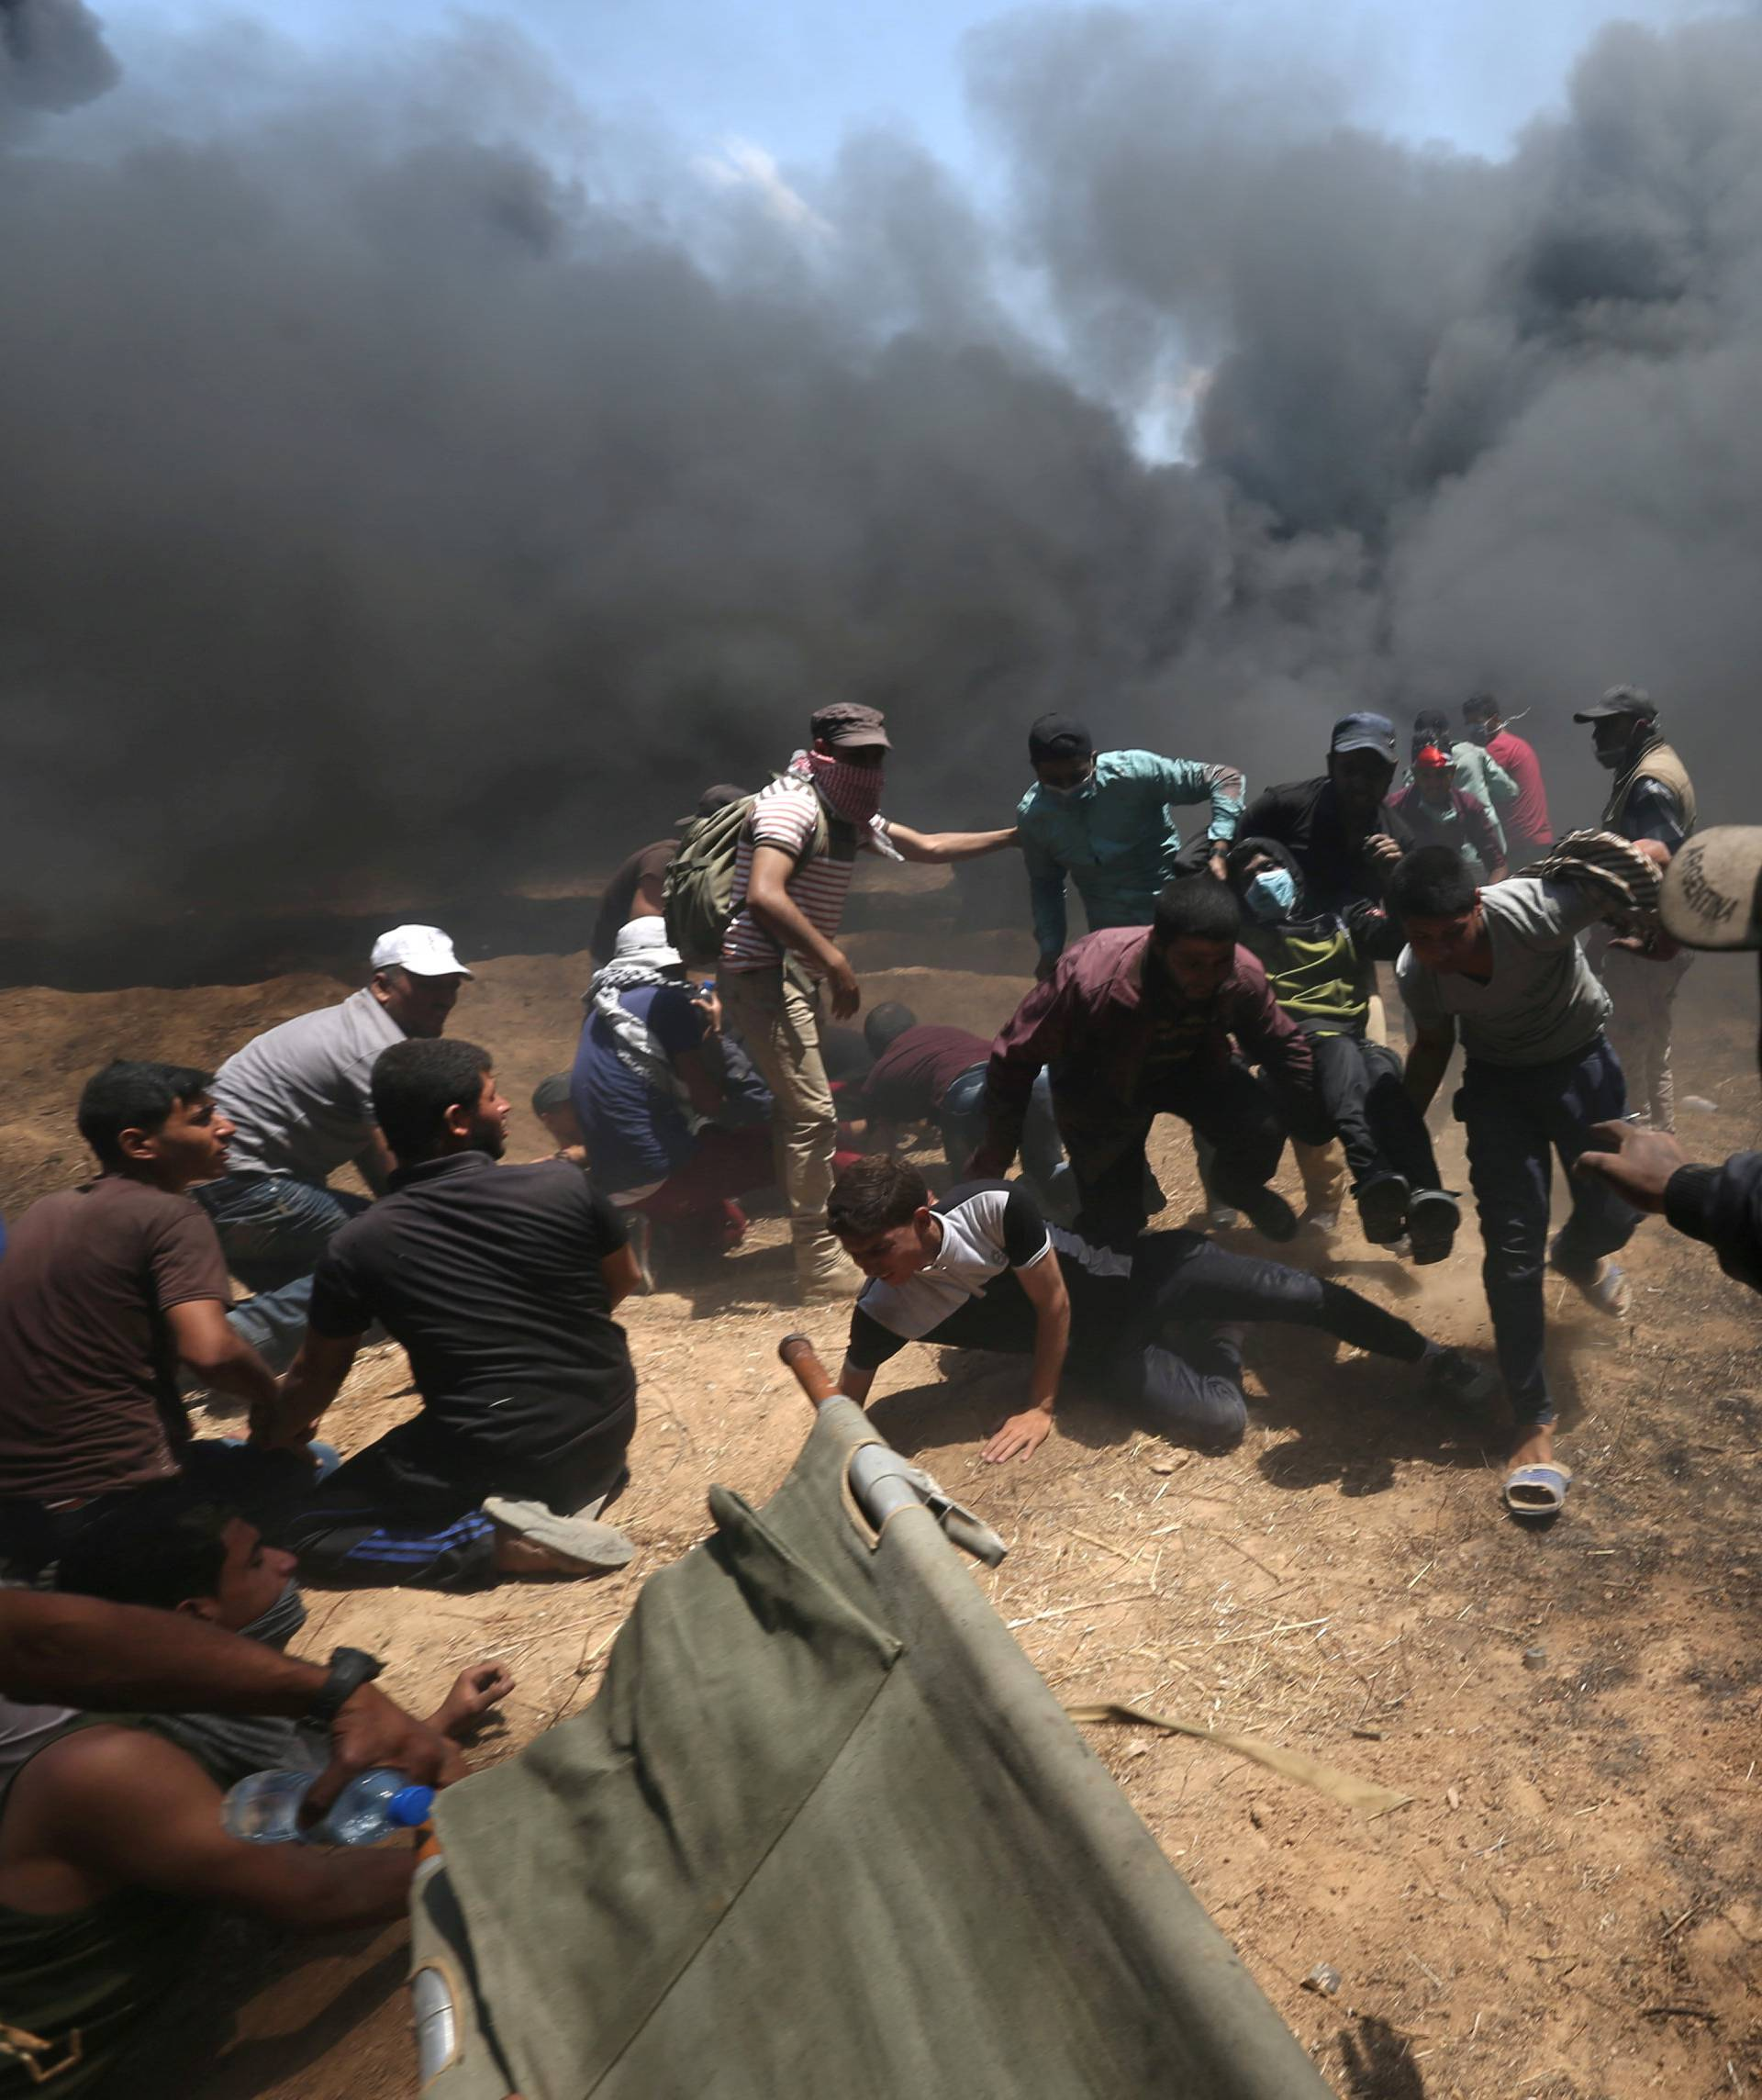 Wounded Palestinian demonstrator is evacuated as others take cover from Israeli fire and tear gas during a protest against U.S. embassy move to Jerusalem and ahead of the 70th anniversary of Nakba, at the Israel-Gaza border in the southern Gaza Strip